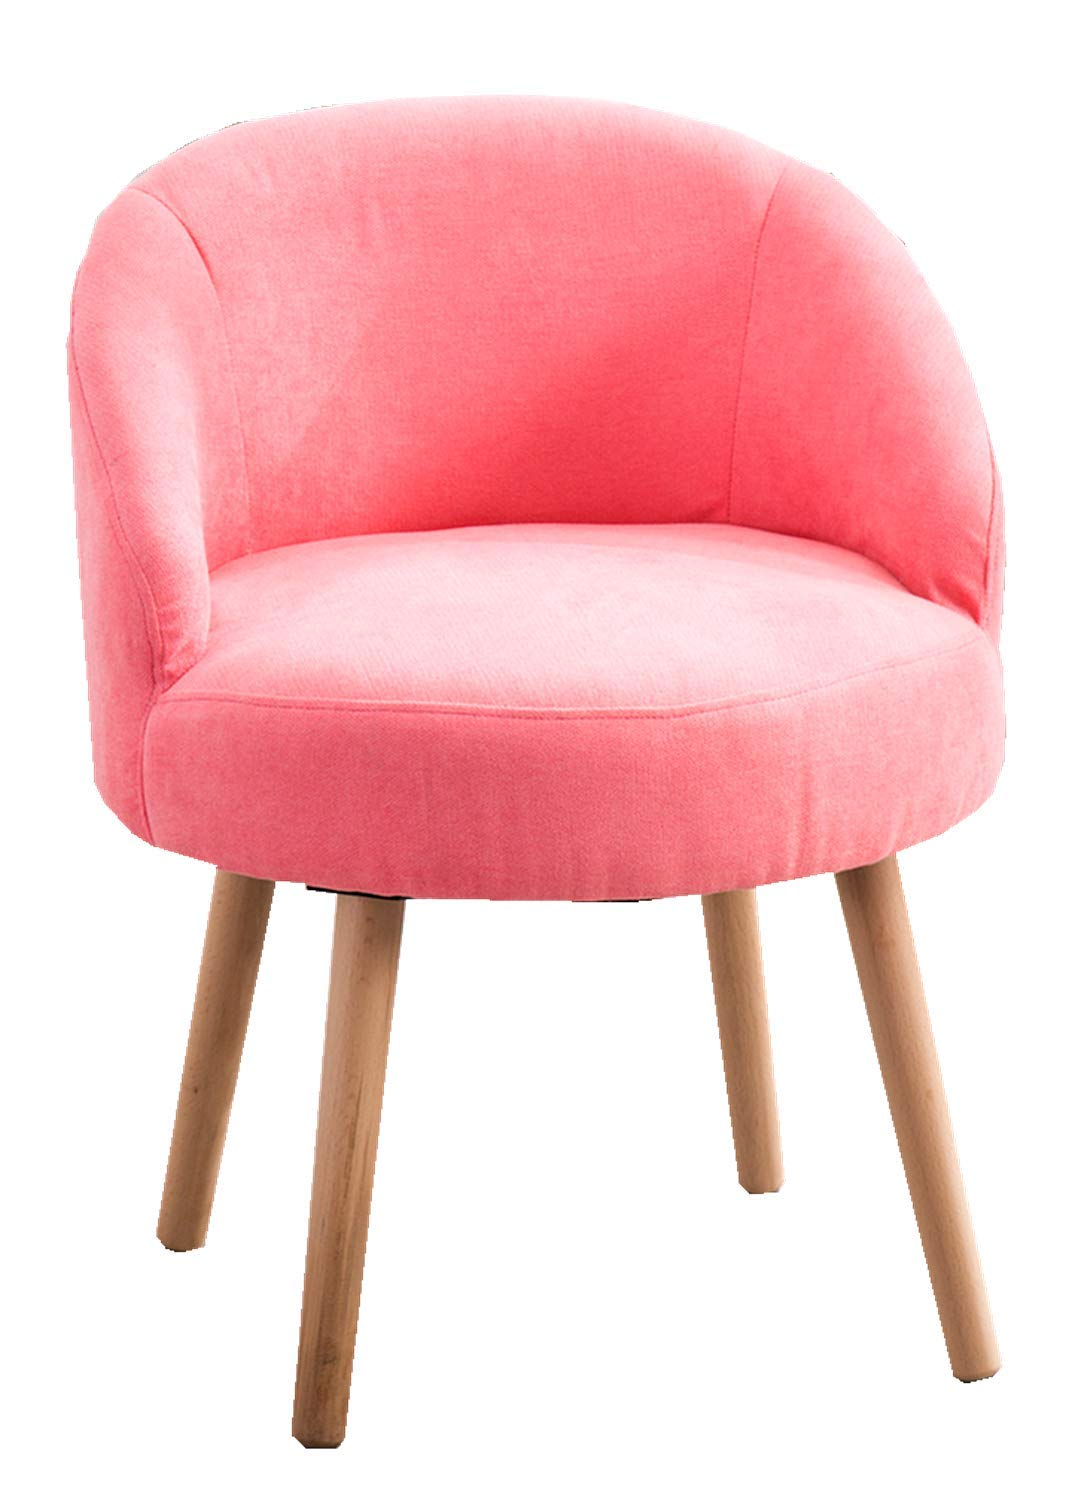 Modern Candy Pink Leisure Arm Chairs Single Couch Seat Home Garden Living Dining Room Furniture Sofa with Solid Wood Legs by DUSTIN'S